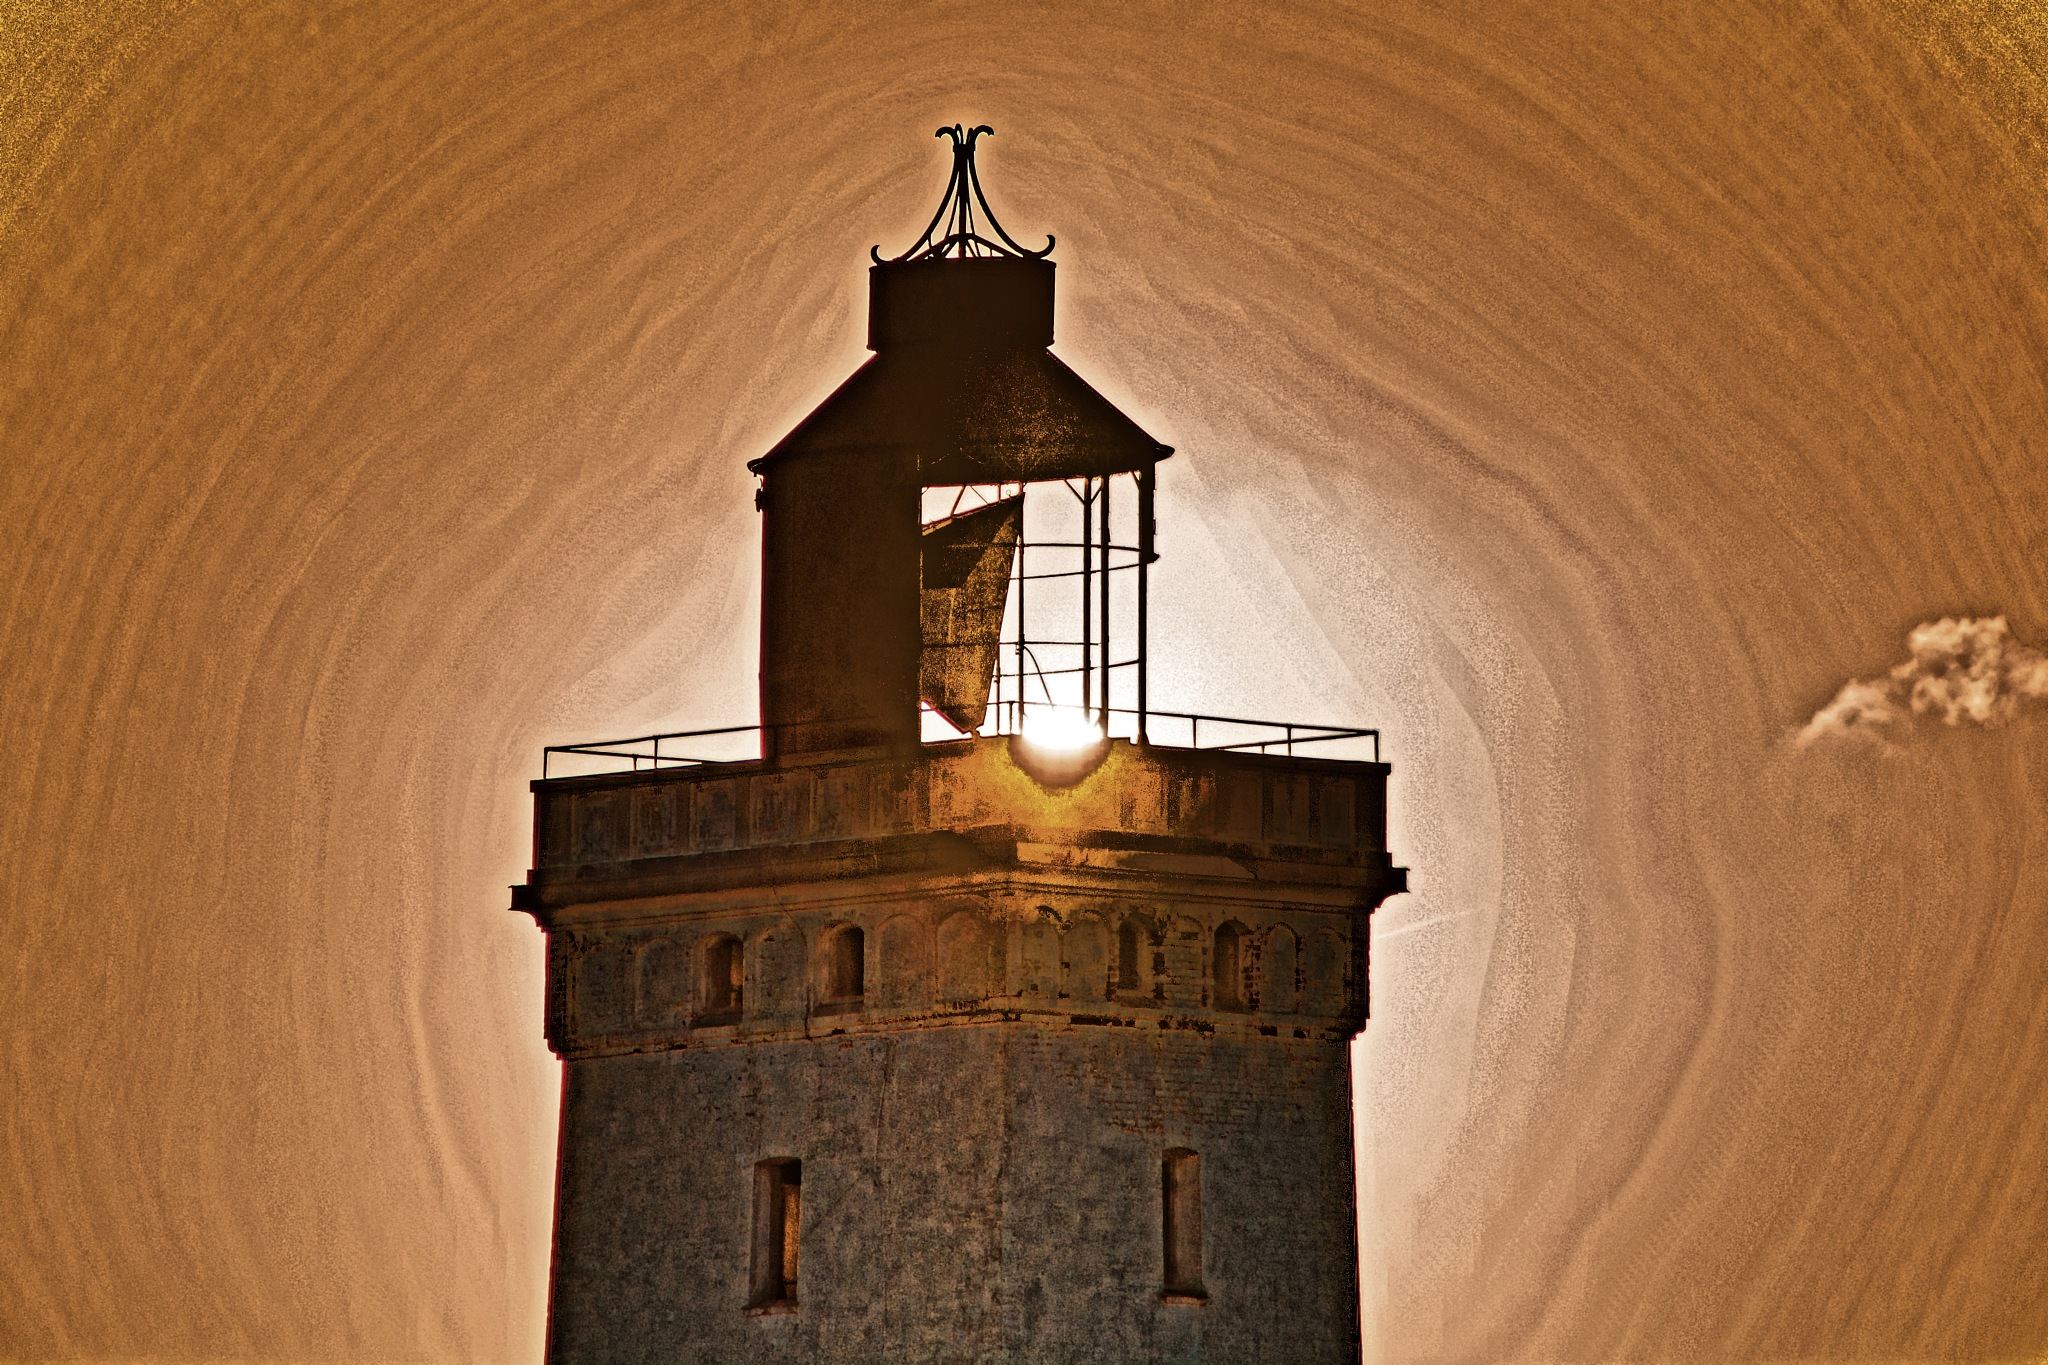 Lighthouse at Sunset 2 by MSchirmann